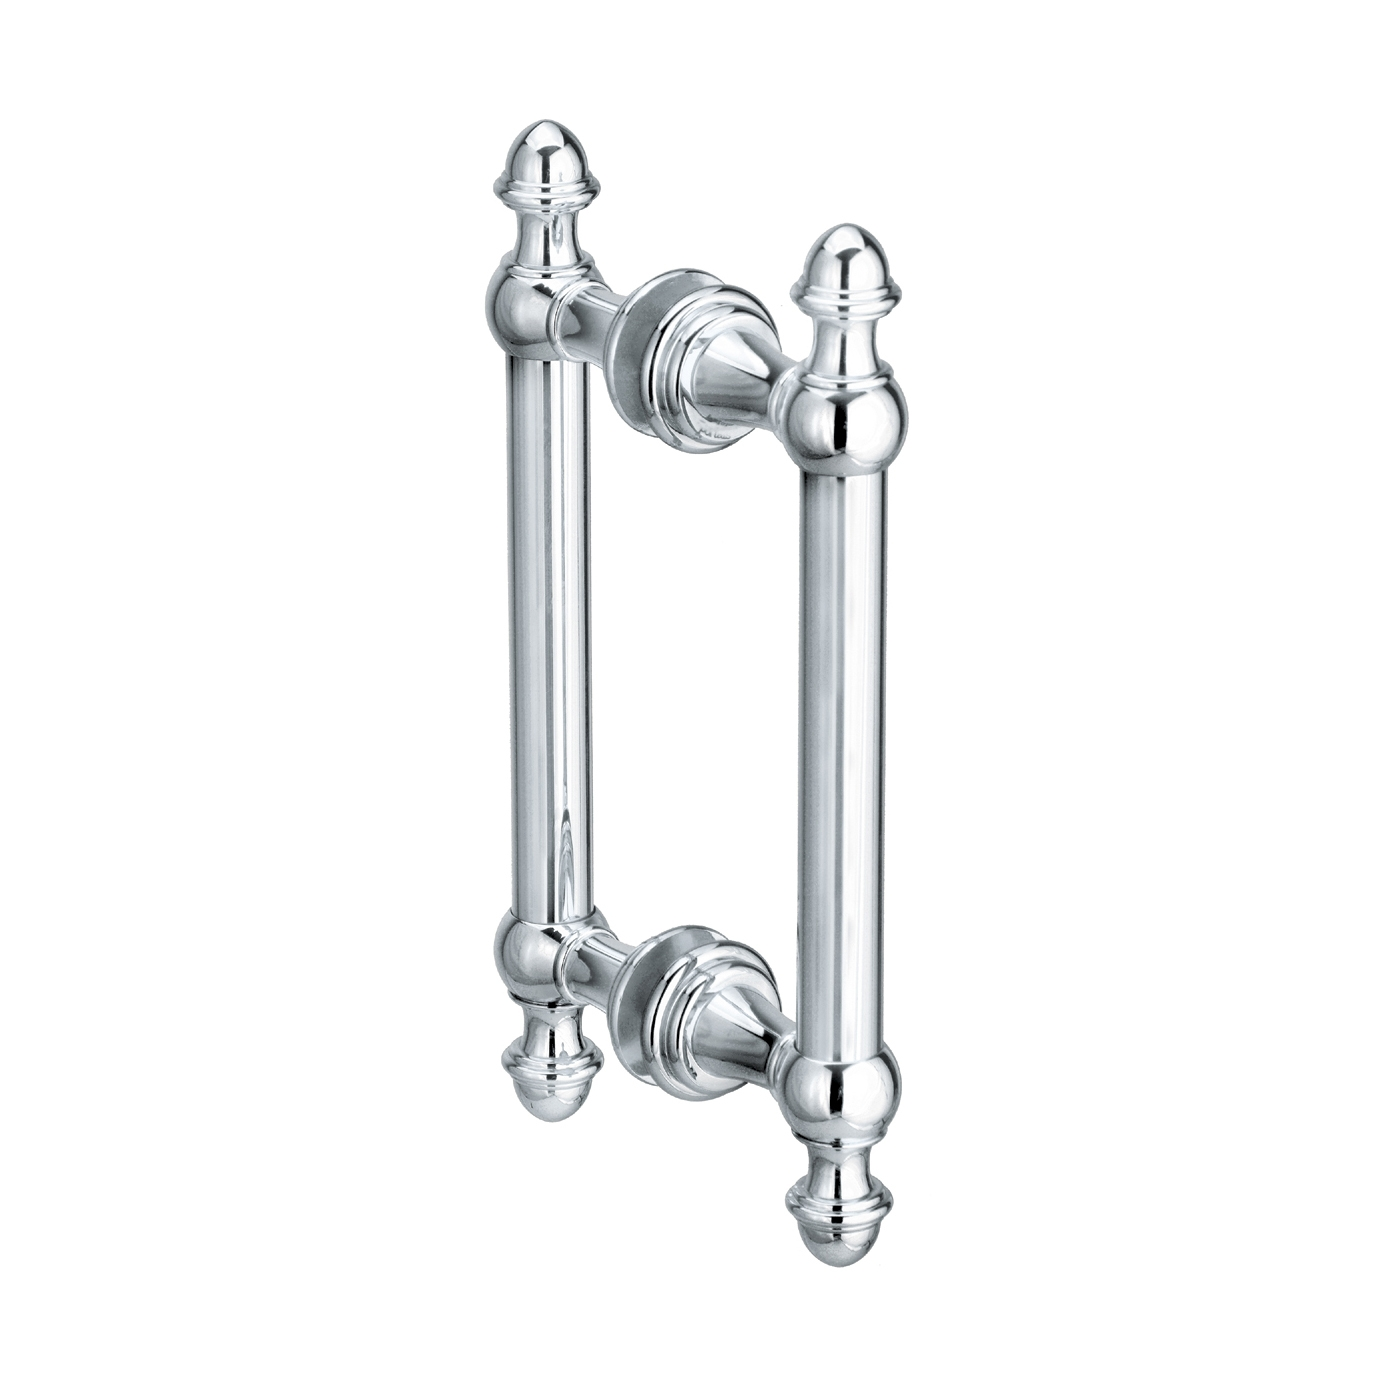 Shower Door Handles Polished Nickelportals hardware l1111 symphony shower door double pull the mine